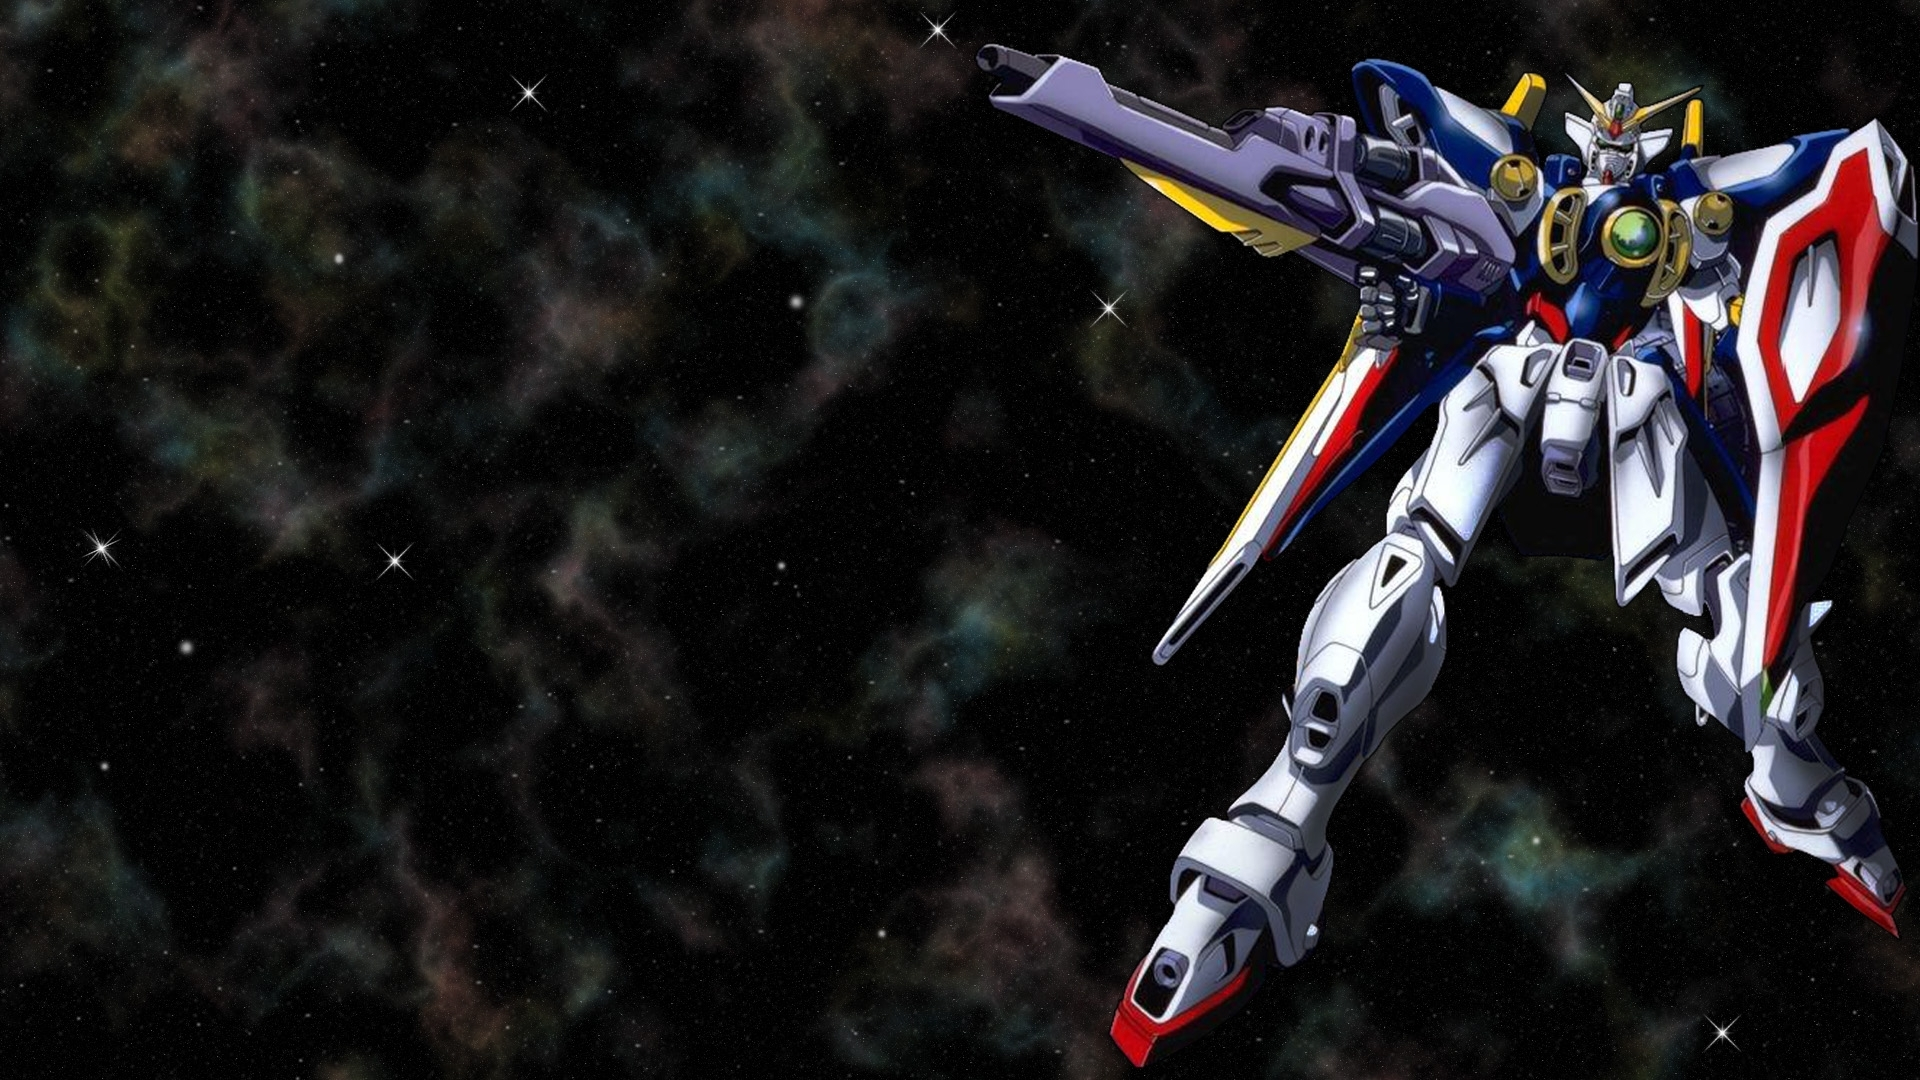 mobile suit gundam hd wallpaper